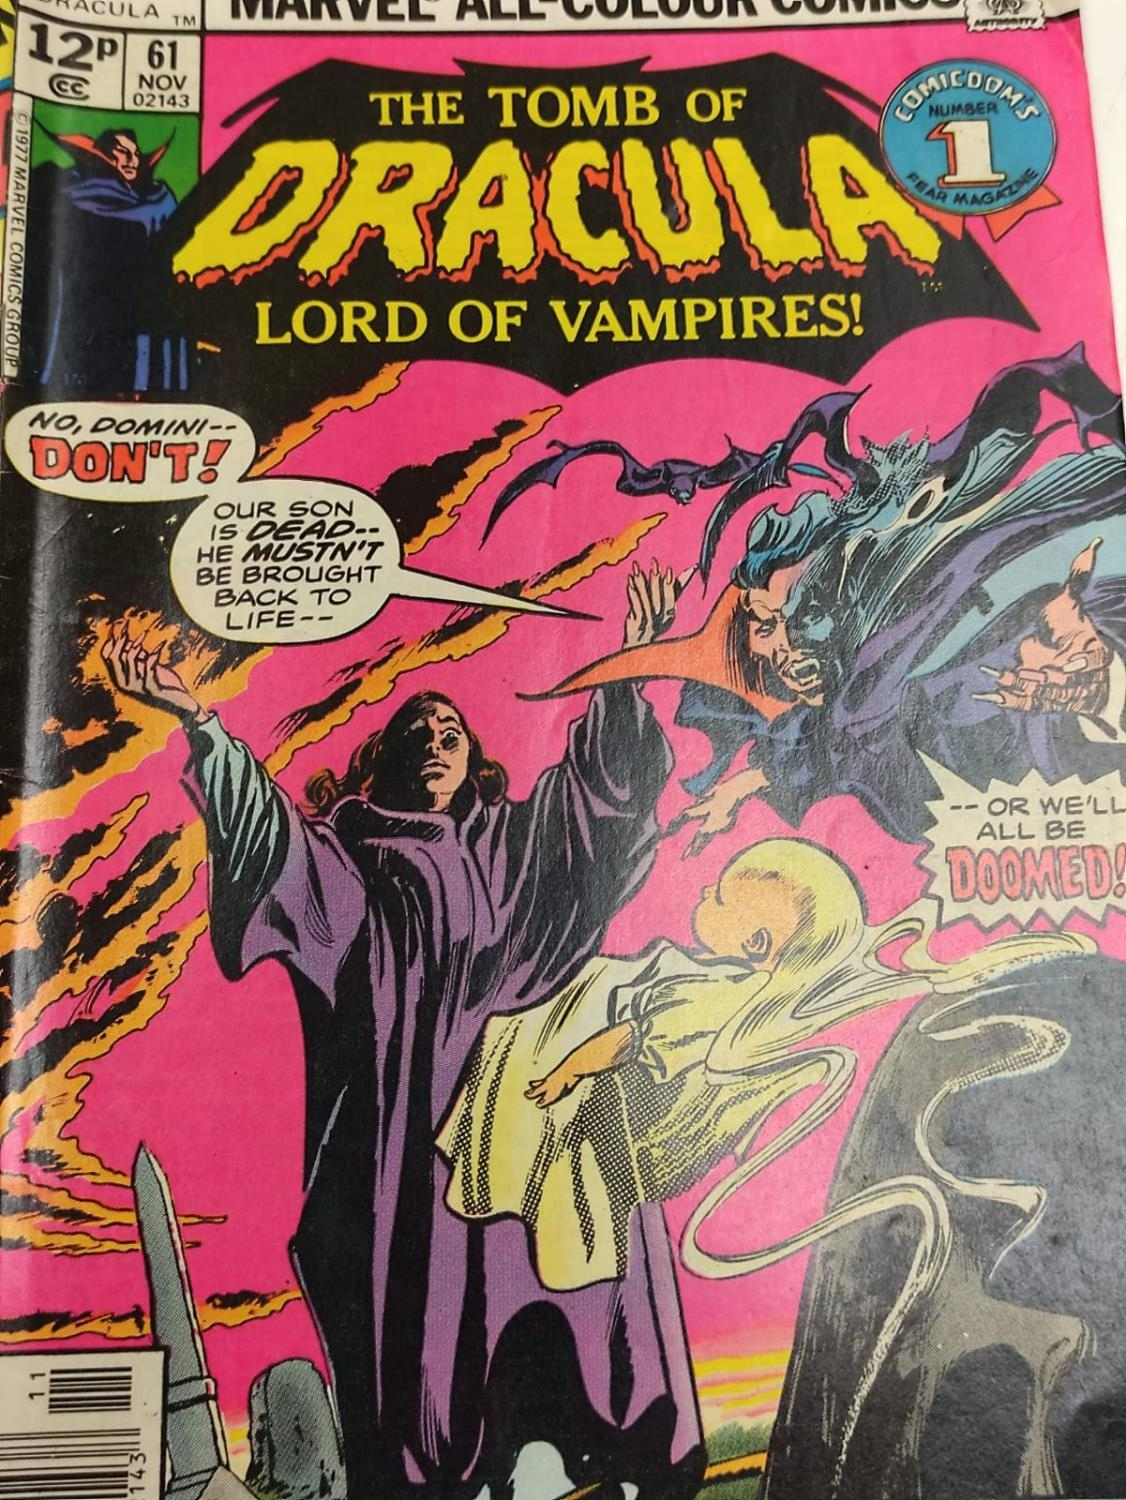 5 editions of Special Vintage Marvel Comics including 'The Tomb of Dracula'. - Image 9 of 15